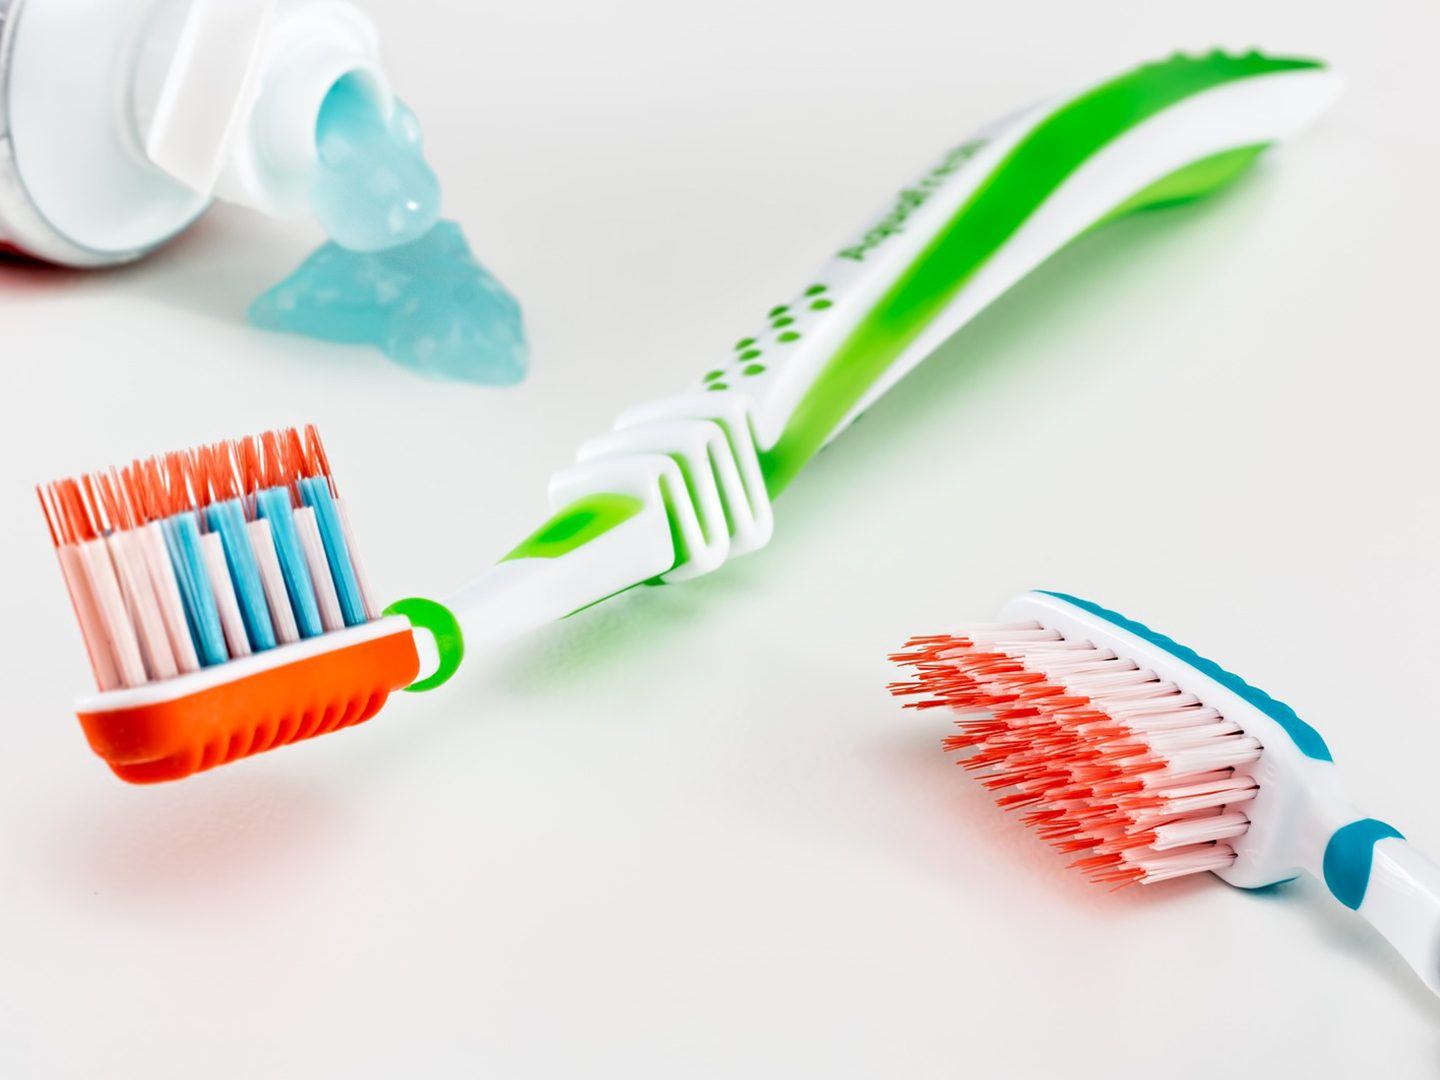 10 Best Toothbrush Brands of 2019